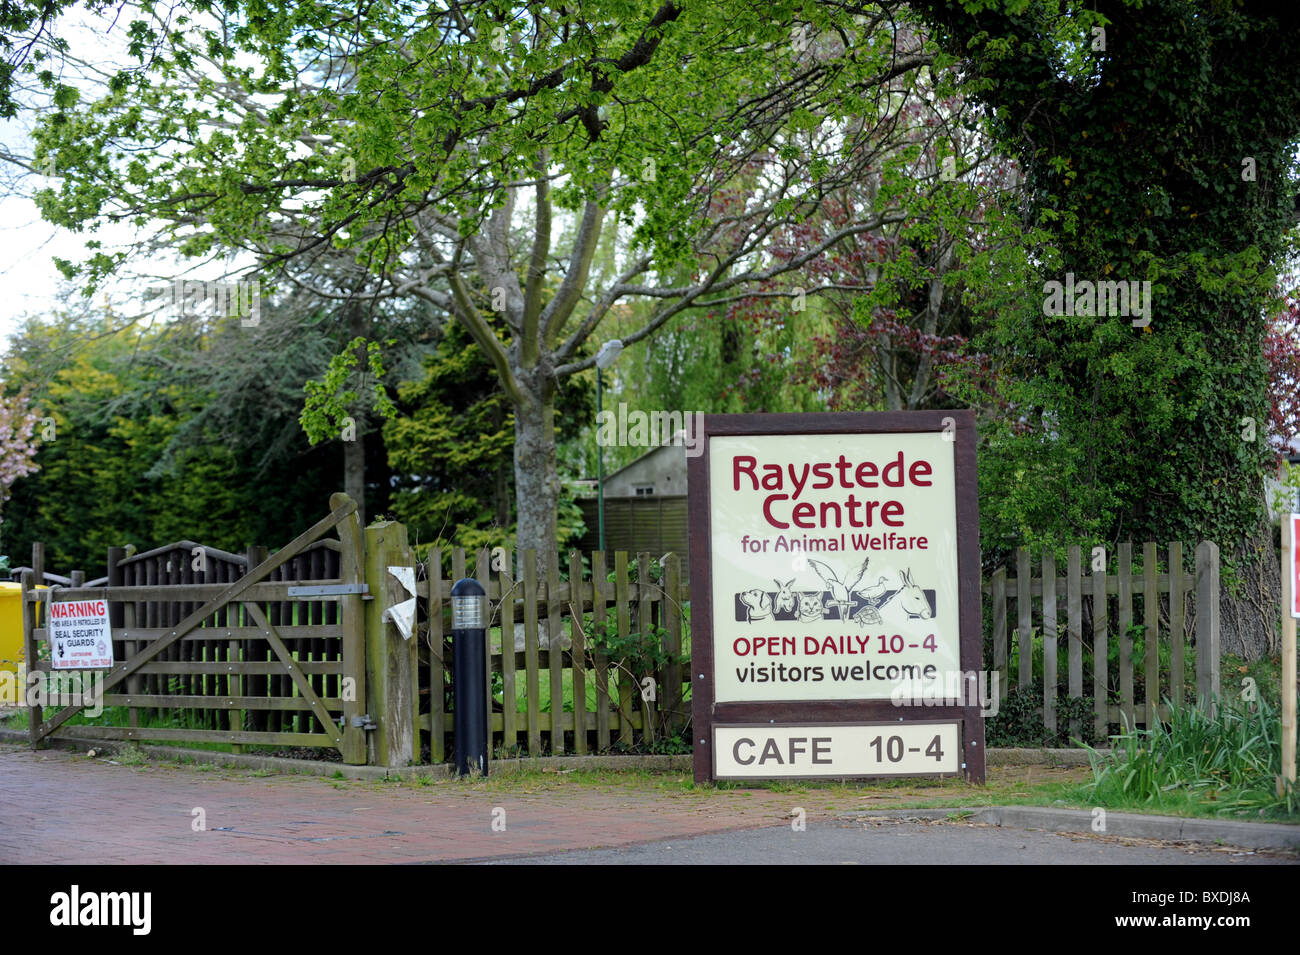 Entrance to the Raystede Centre for Animal Welfare in Ringmer East Sussex - Stock Image